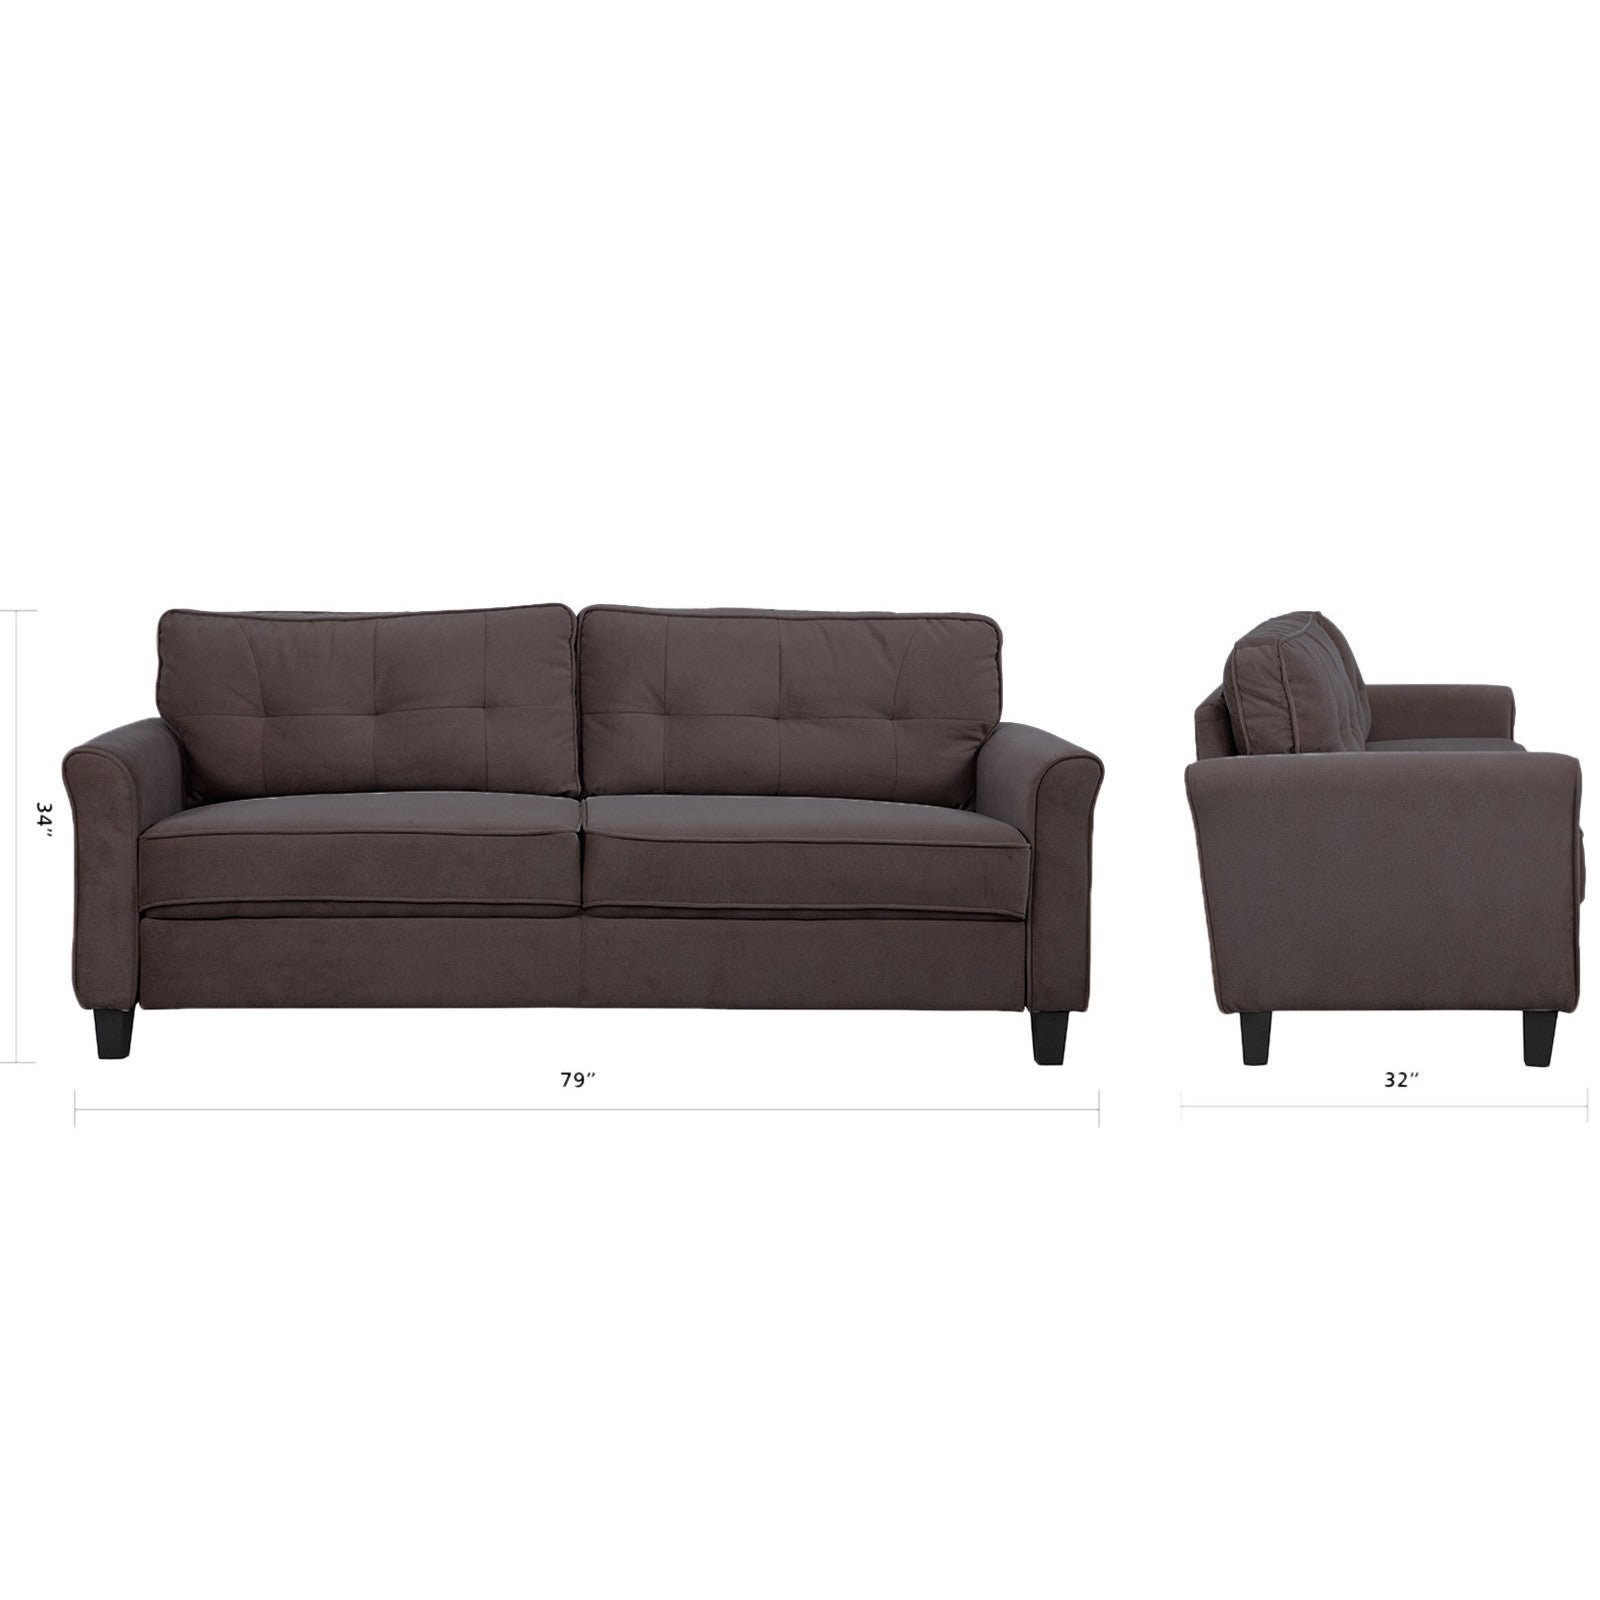 living sofa mocha from for comforter room sofas sectional insider contemporary shaped furniture best design comfortable superior l microfiber seller